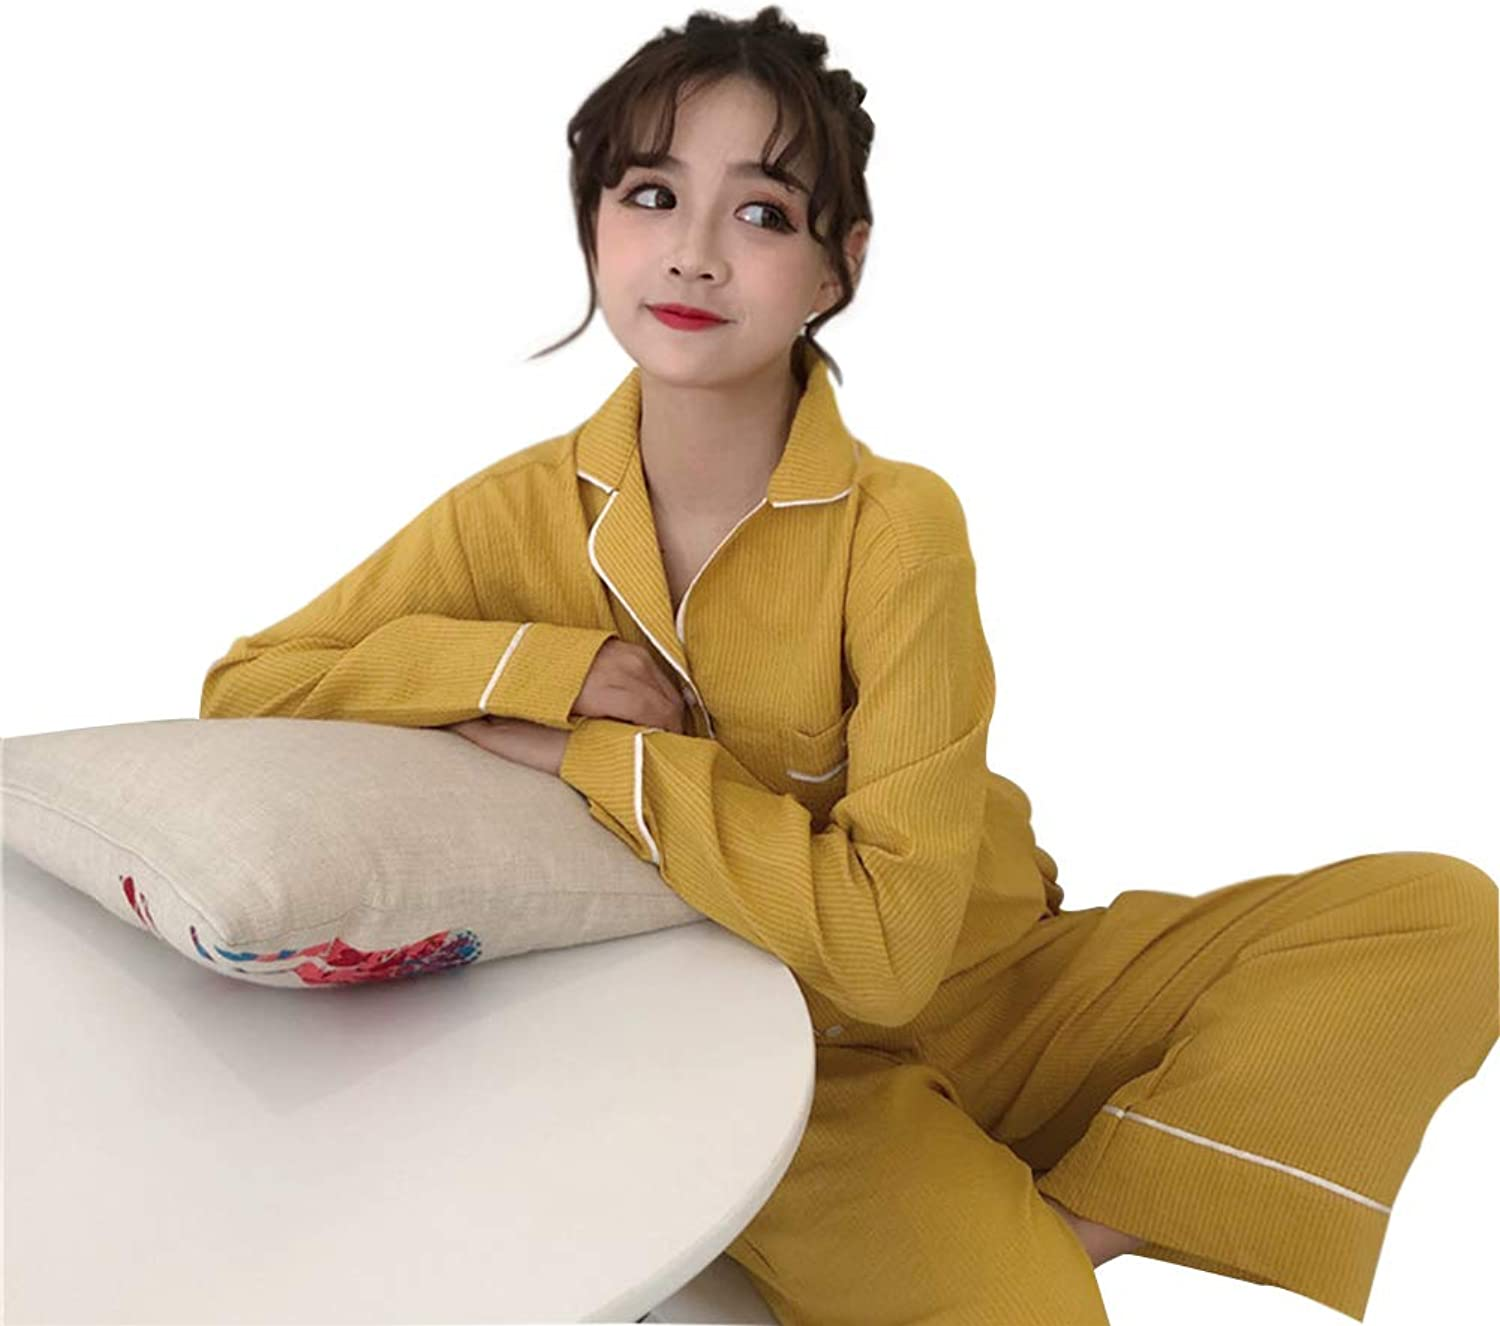 Spring Women's Clothing Pajamas Sweet Long Sleeve Bathrobe Pajama Pants TwoPiece Set Loose Student Leisure Home Clothes Suit Female,Yellow,OneSize